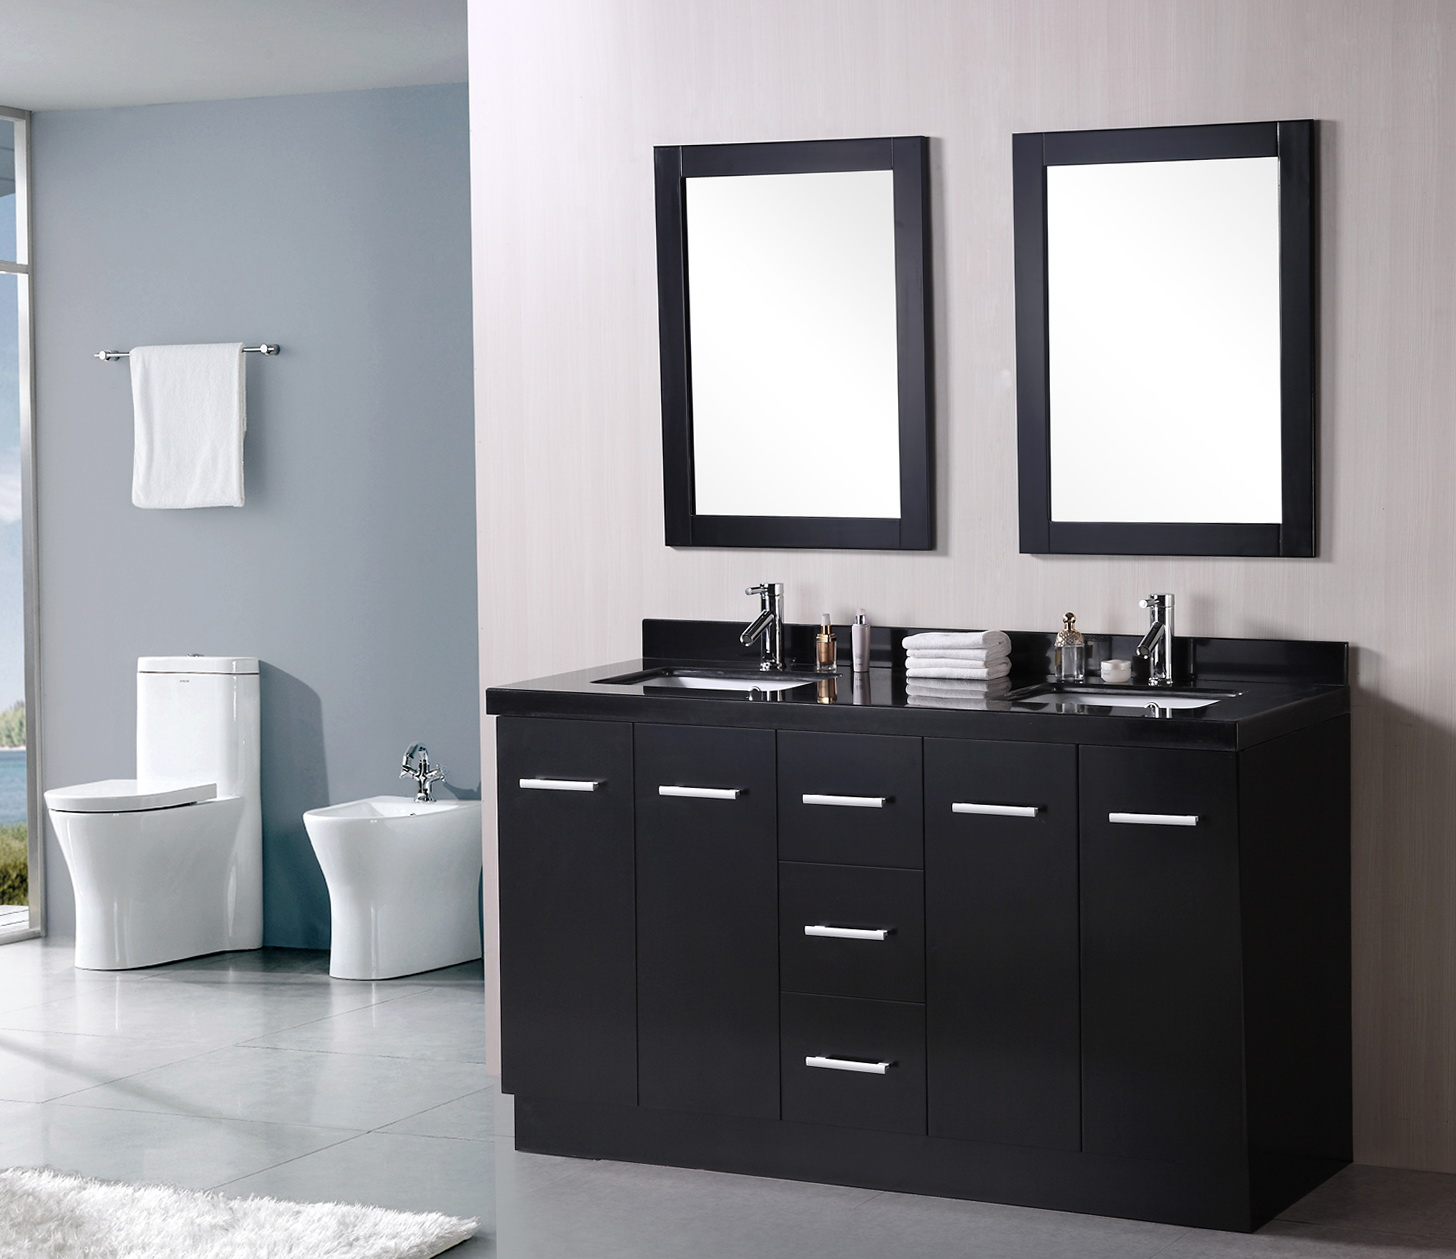 Bathroom Vanities Ideas Design